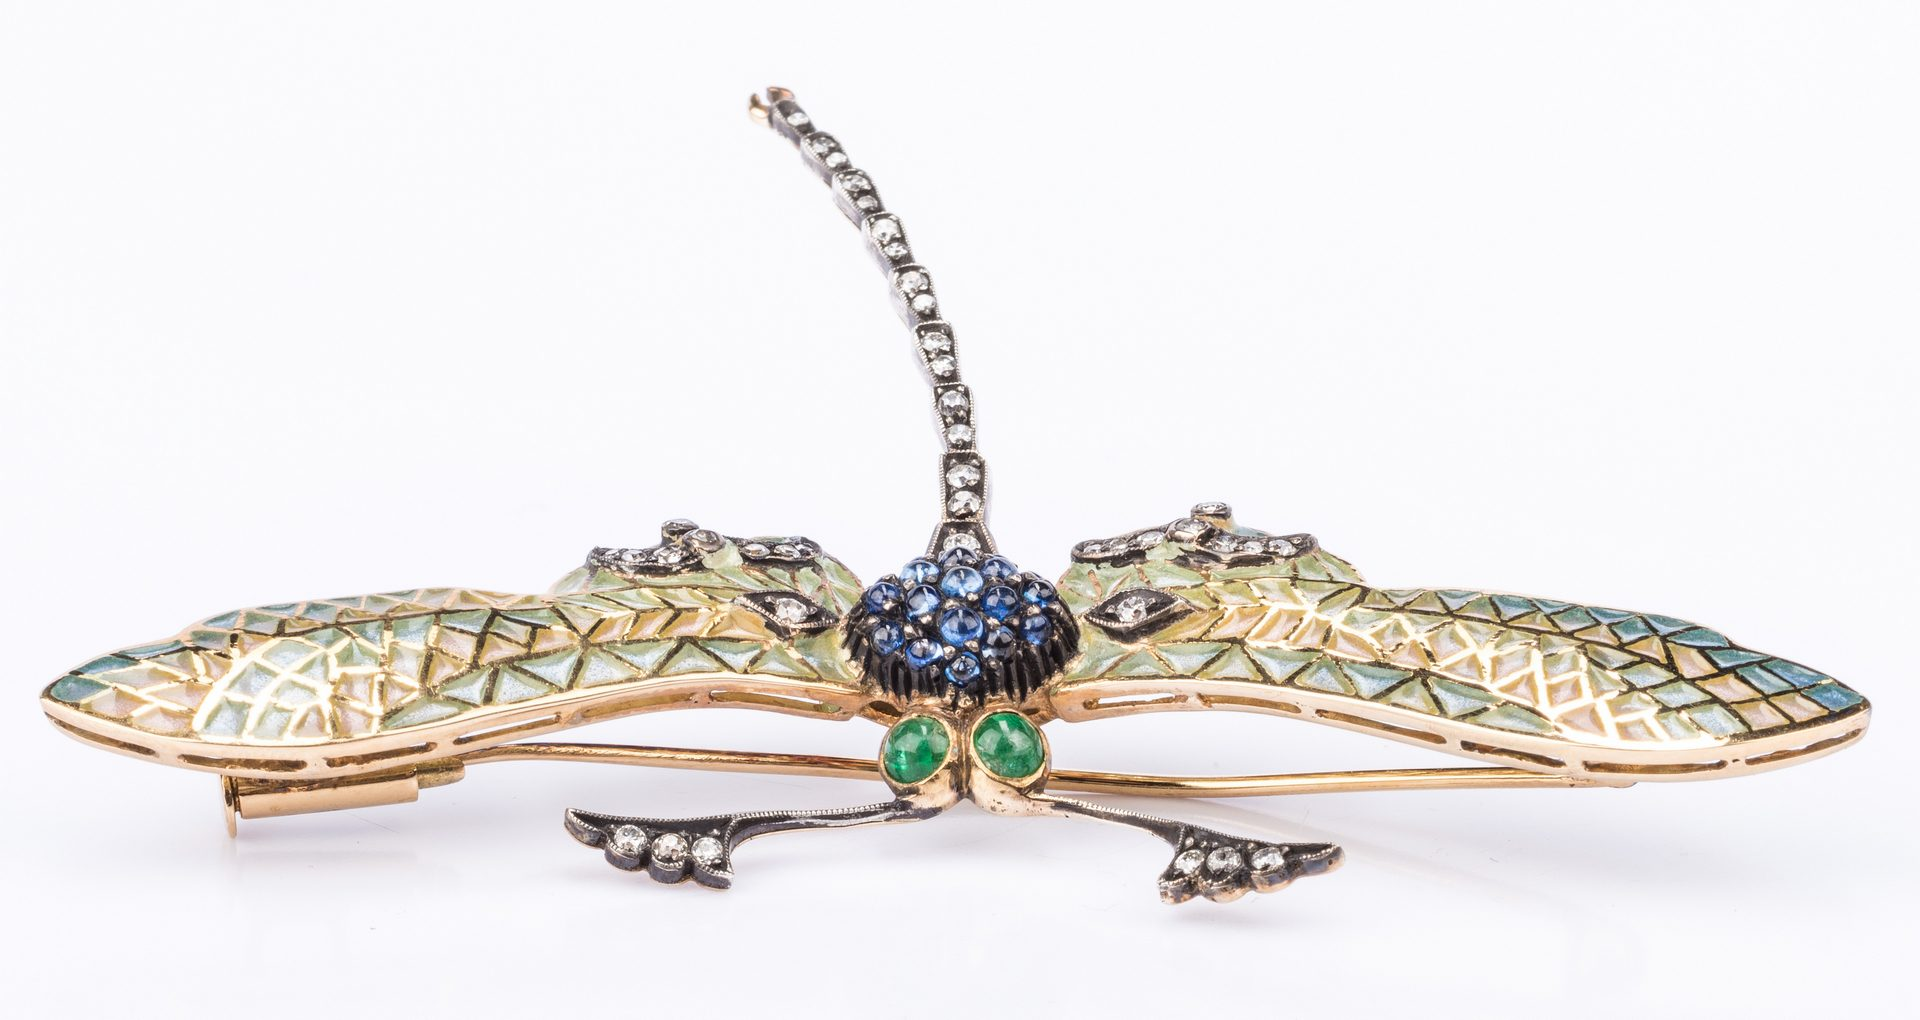 Lot 207: Jeweled Dragonfly Pin with Enamel